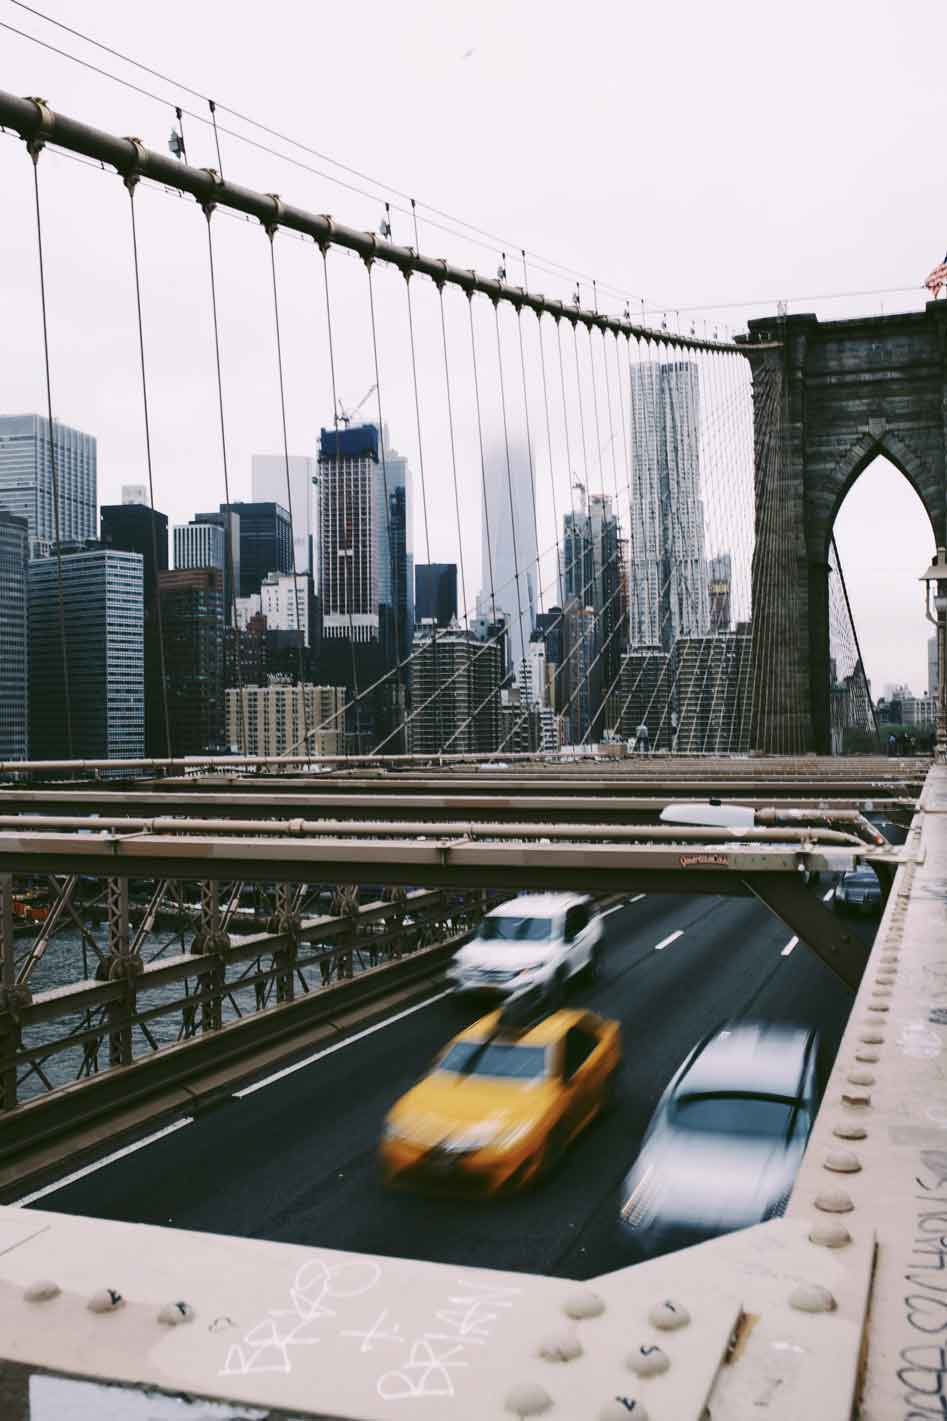 Brooklyn Bridge with moving cars and Manhattan skyscrapers in the background